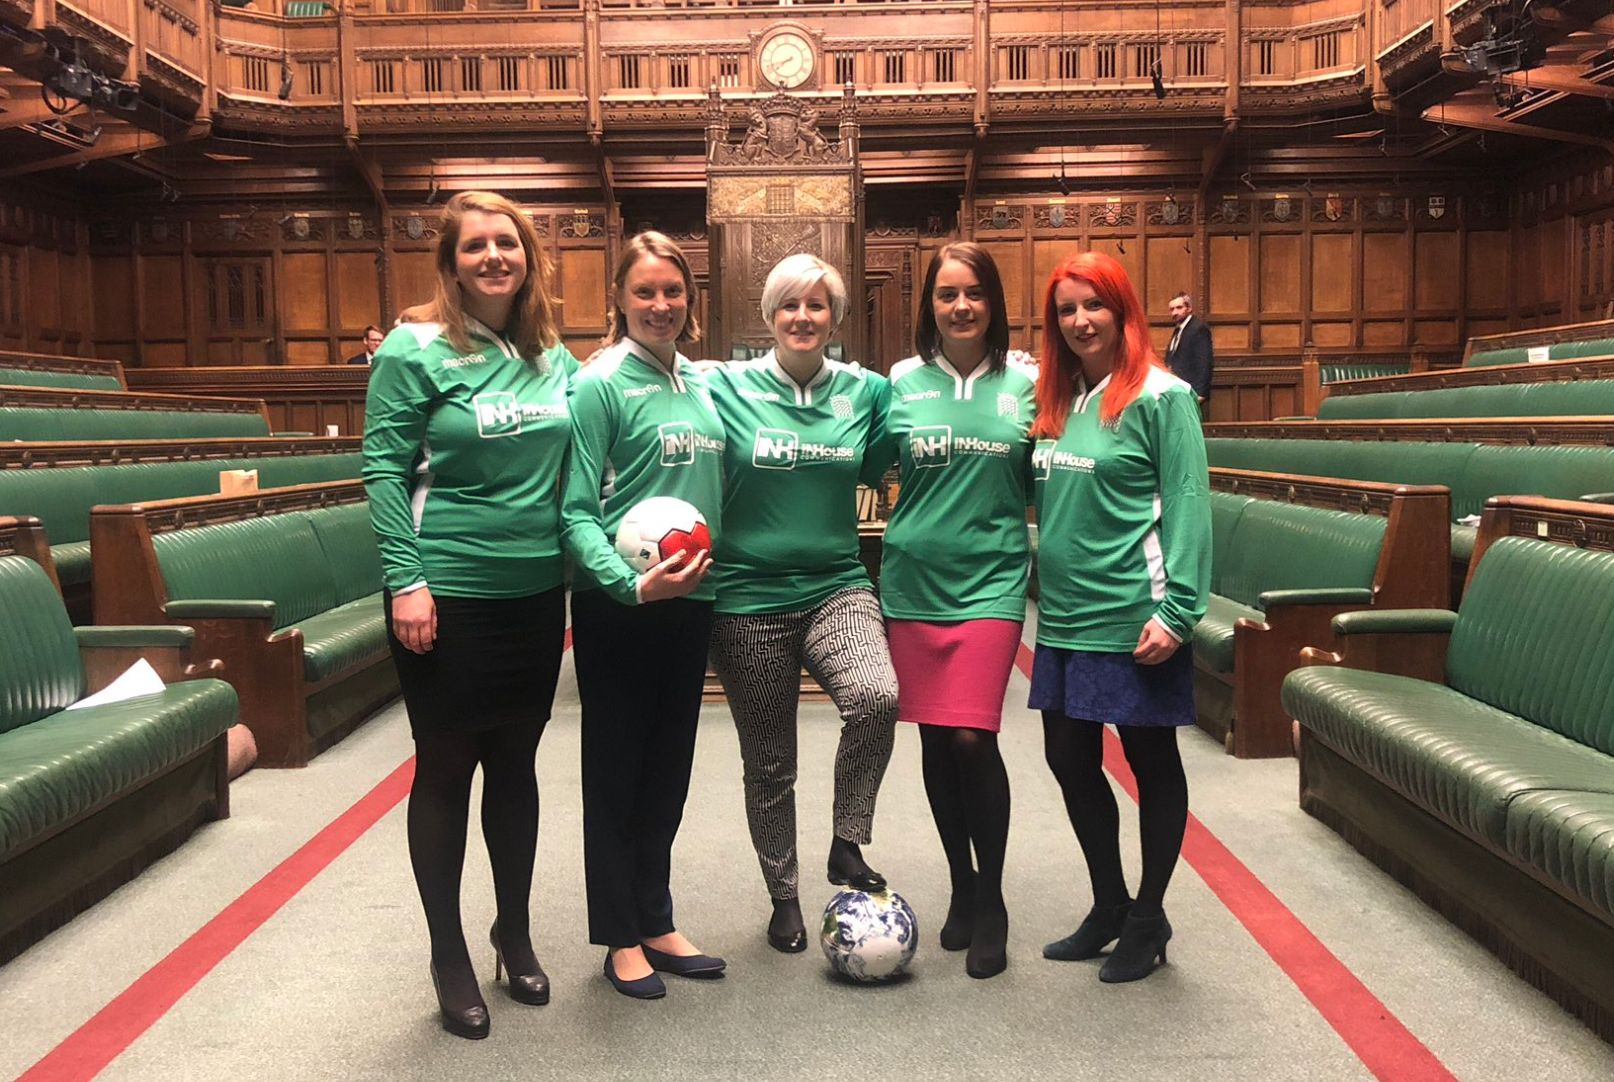 Speaker John Bercow Scolds Female MPs For Playing Football In